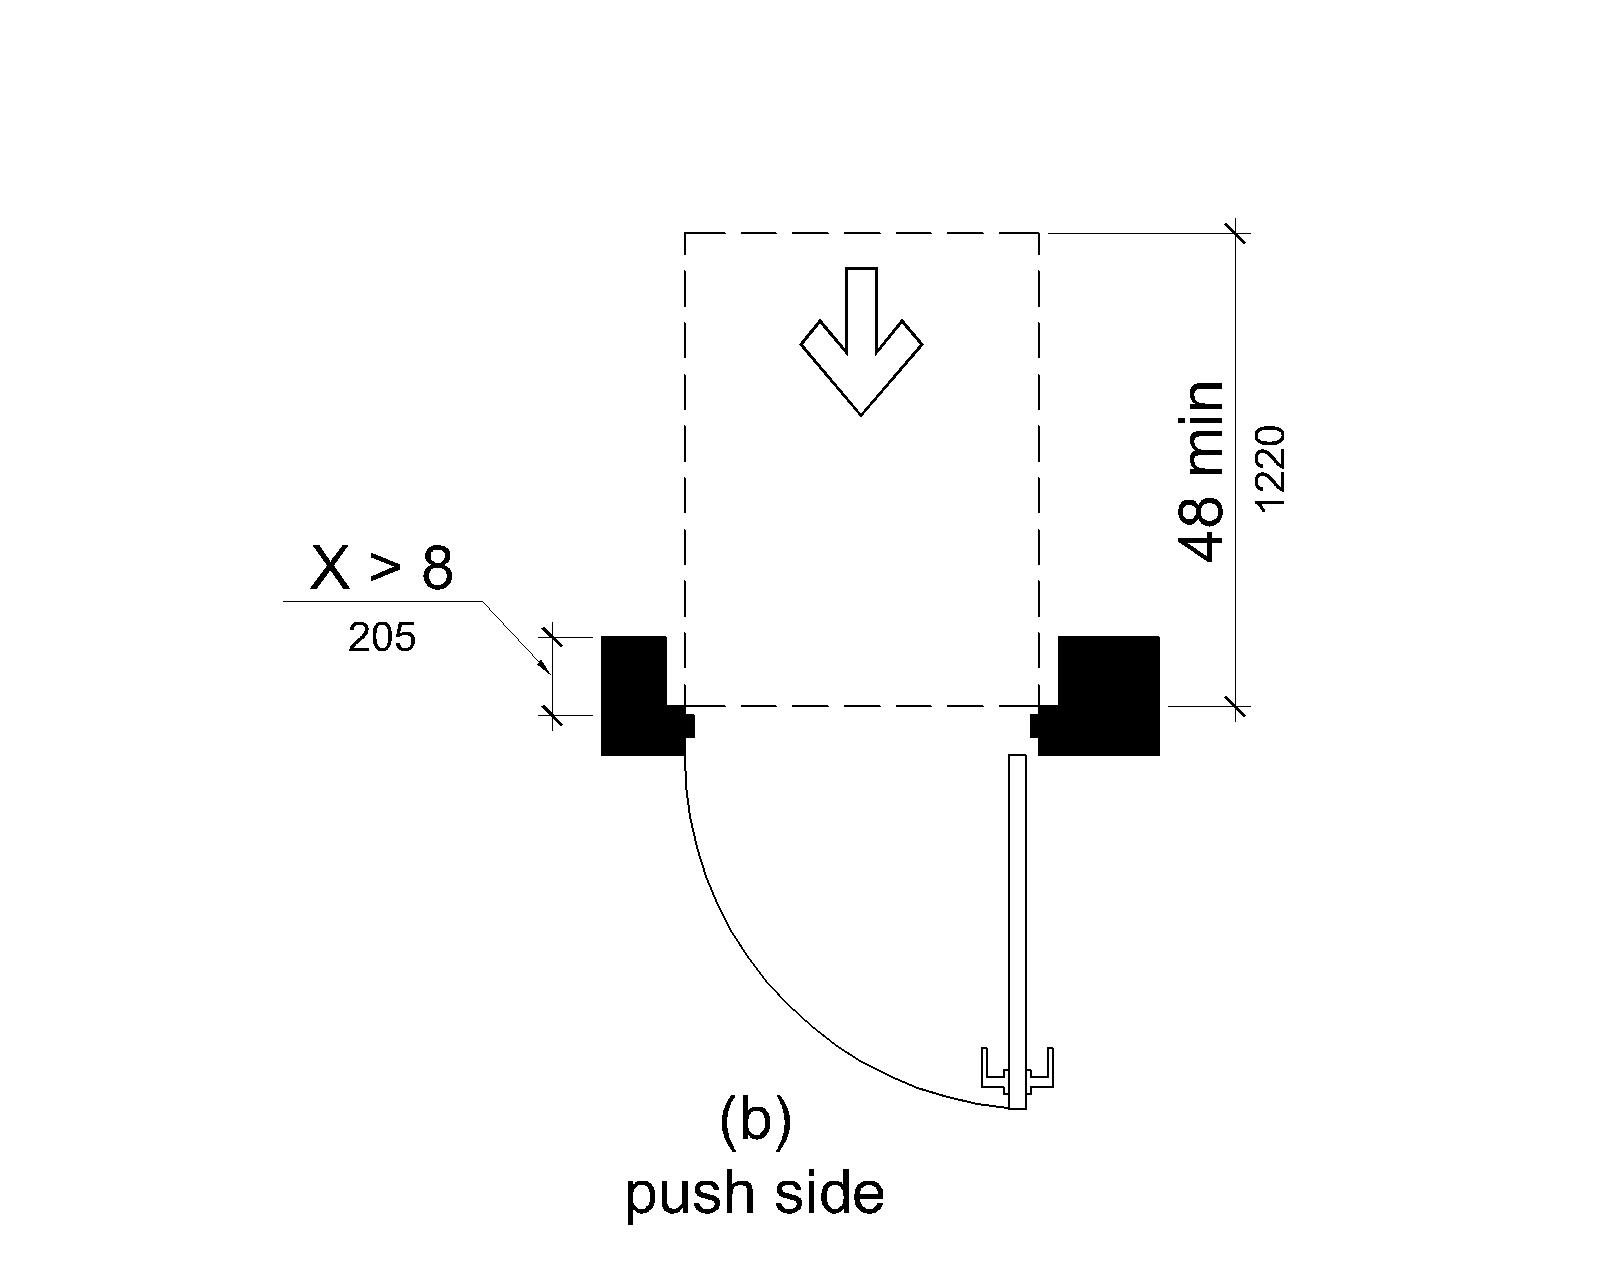 (b) On the push side of doors not equipped with a closer or latch, the maneuvering space is the same width as the door opening and extends 48 inches (1220 mm) minimum perpendicular to the plane of the doorway.